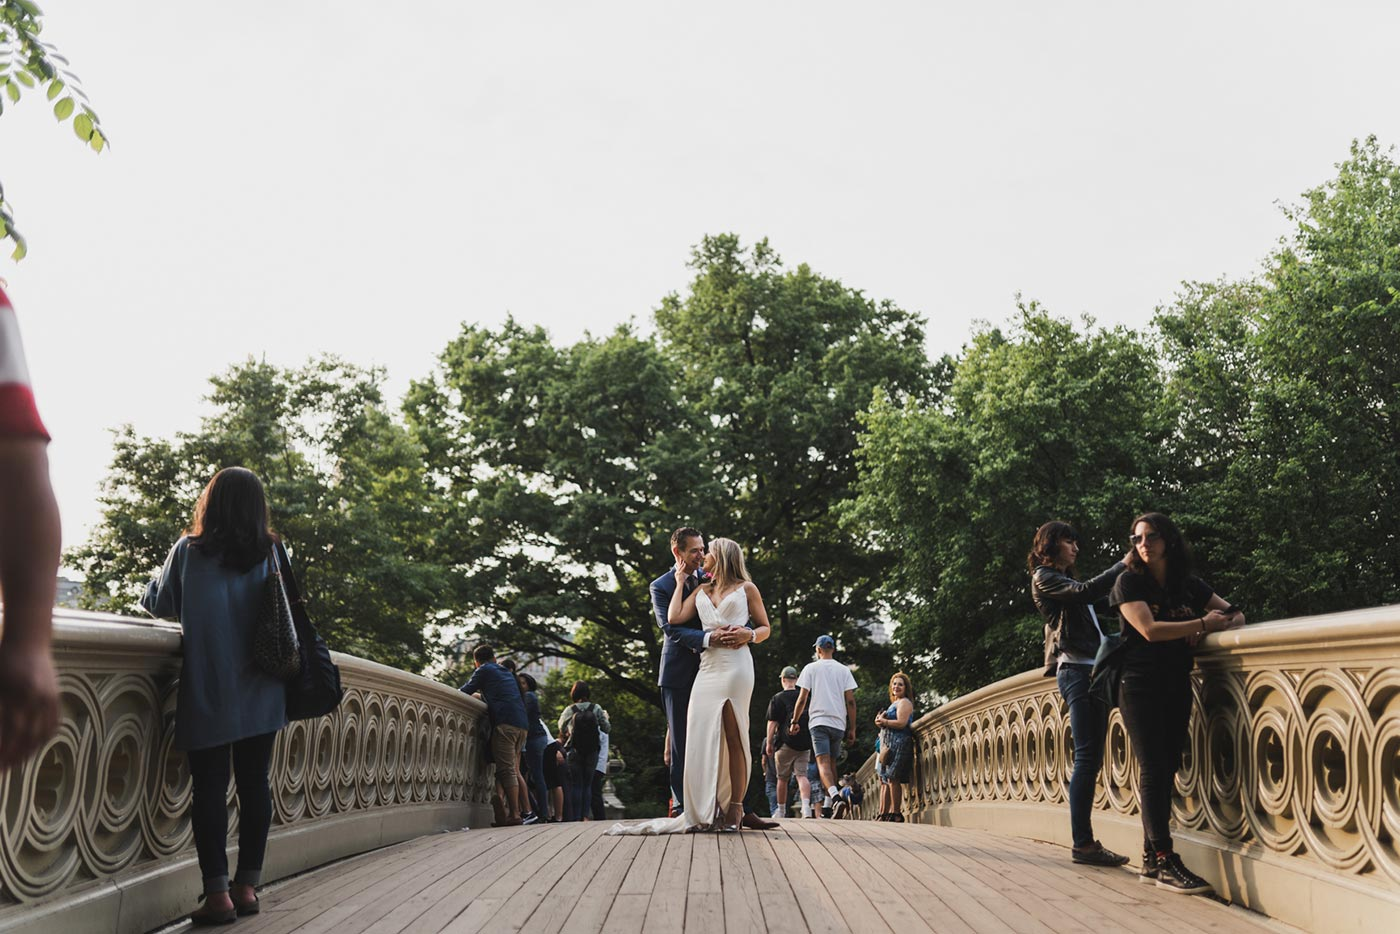 Weddings by Hanel -06.01.19 - Jane & Neil - Conservatory Garden Elopement - 41